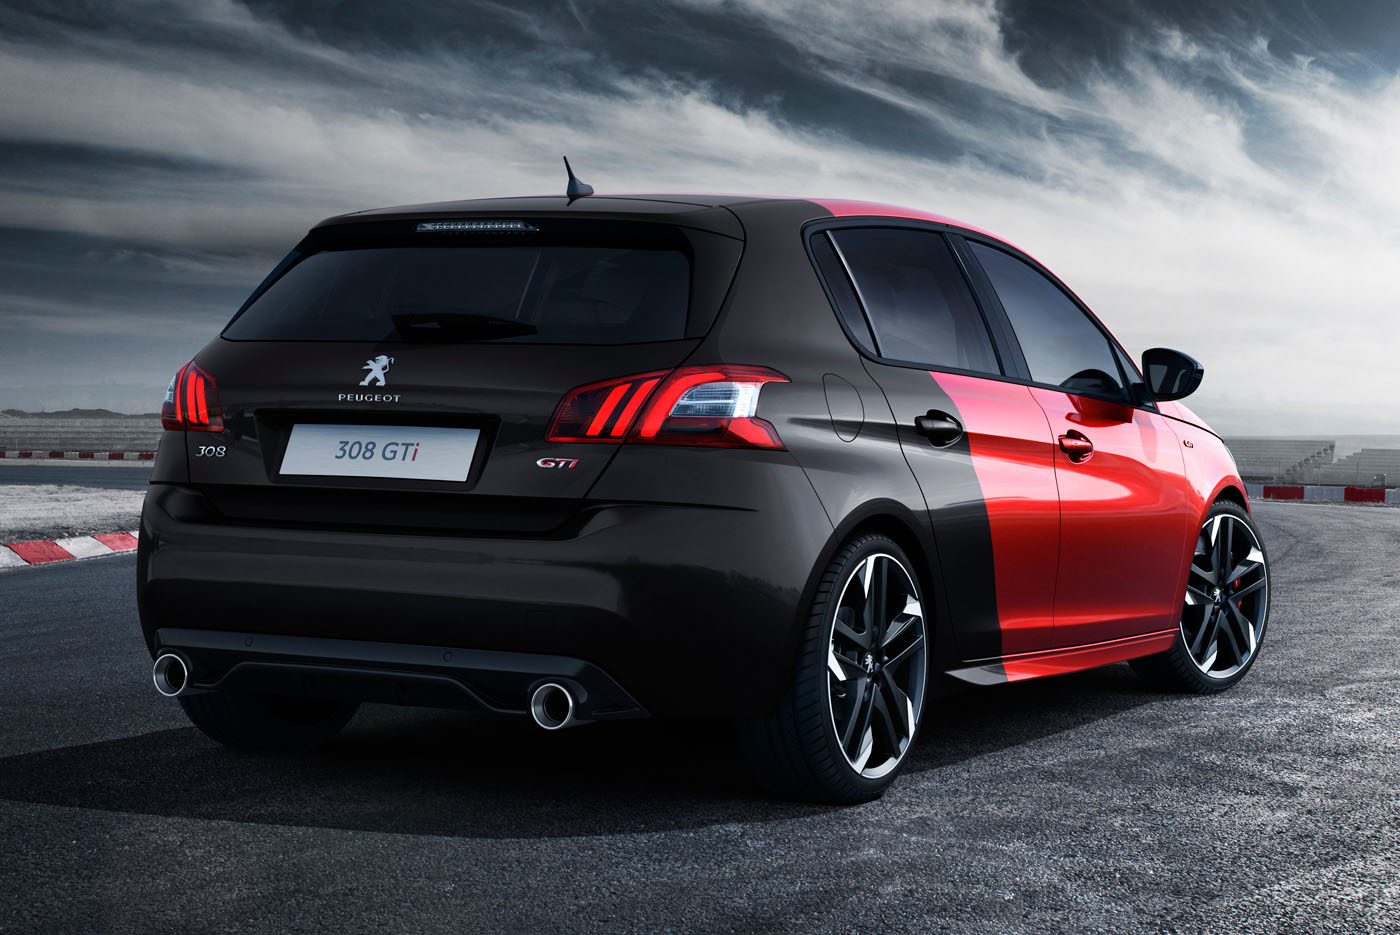 2015 peugeot 308 gti breaks cover gets either 250 or 270 hp video. Black Bedroom Furniture Sets. Home Design Ideas